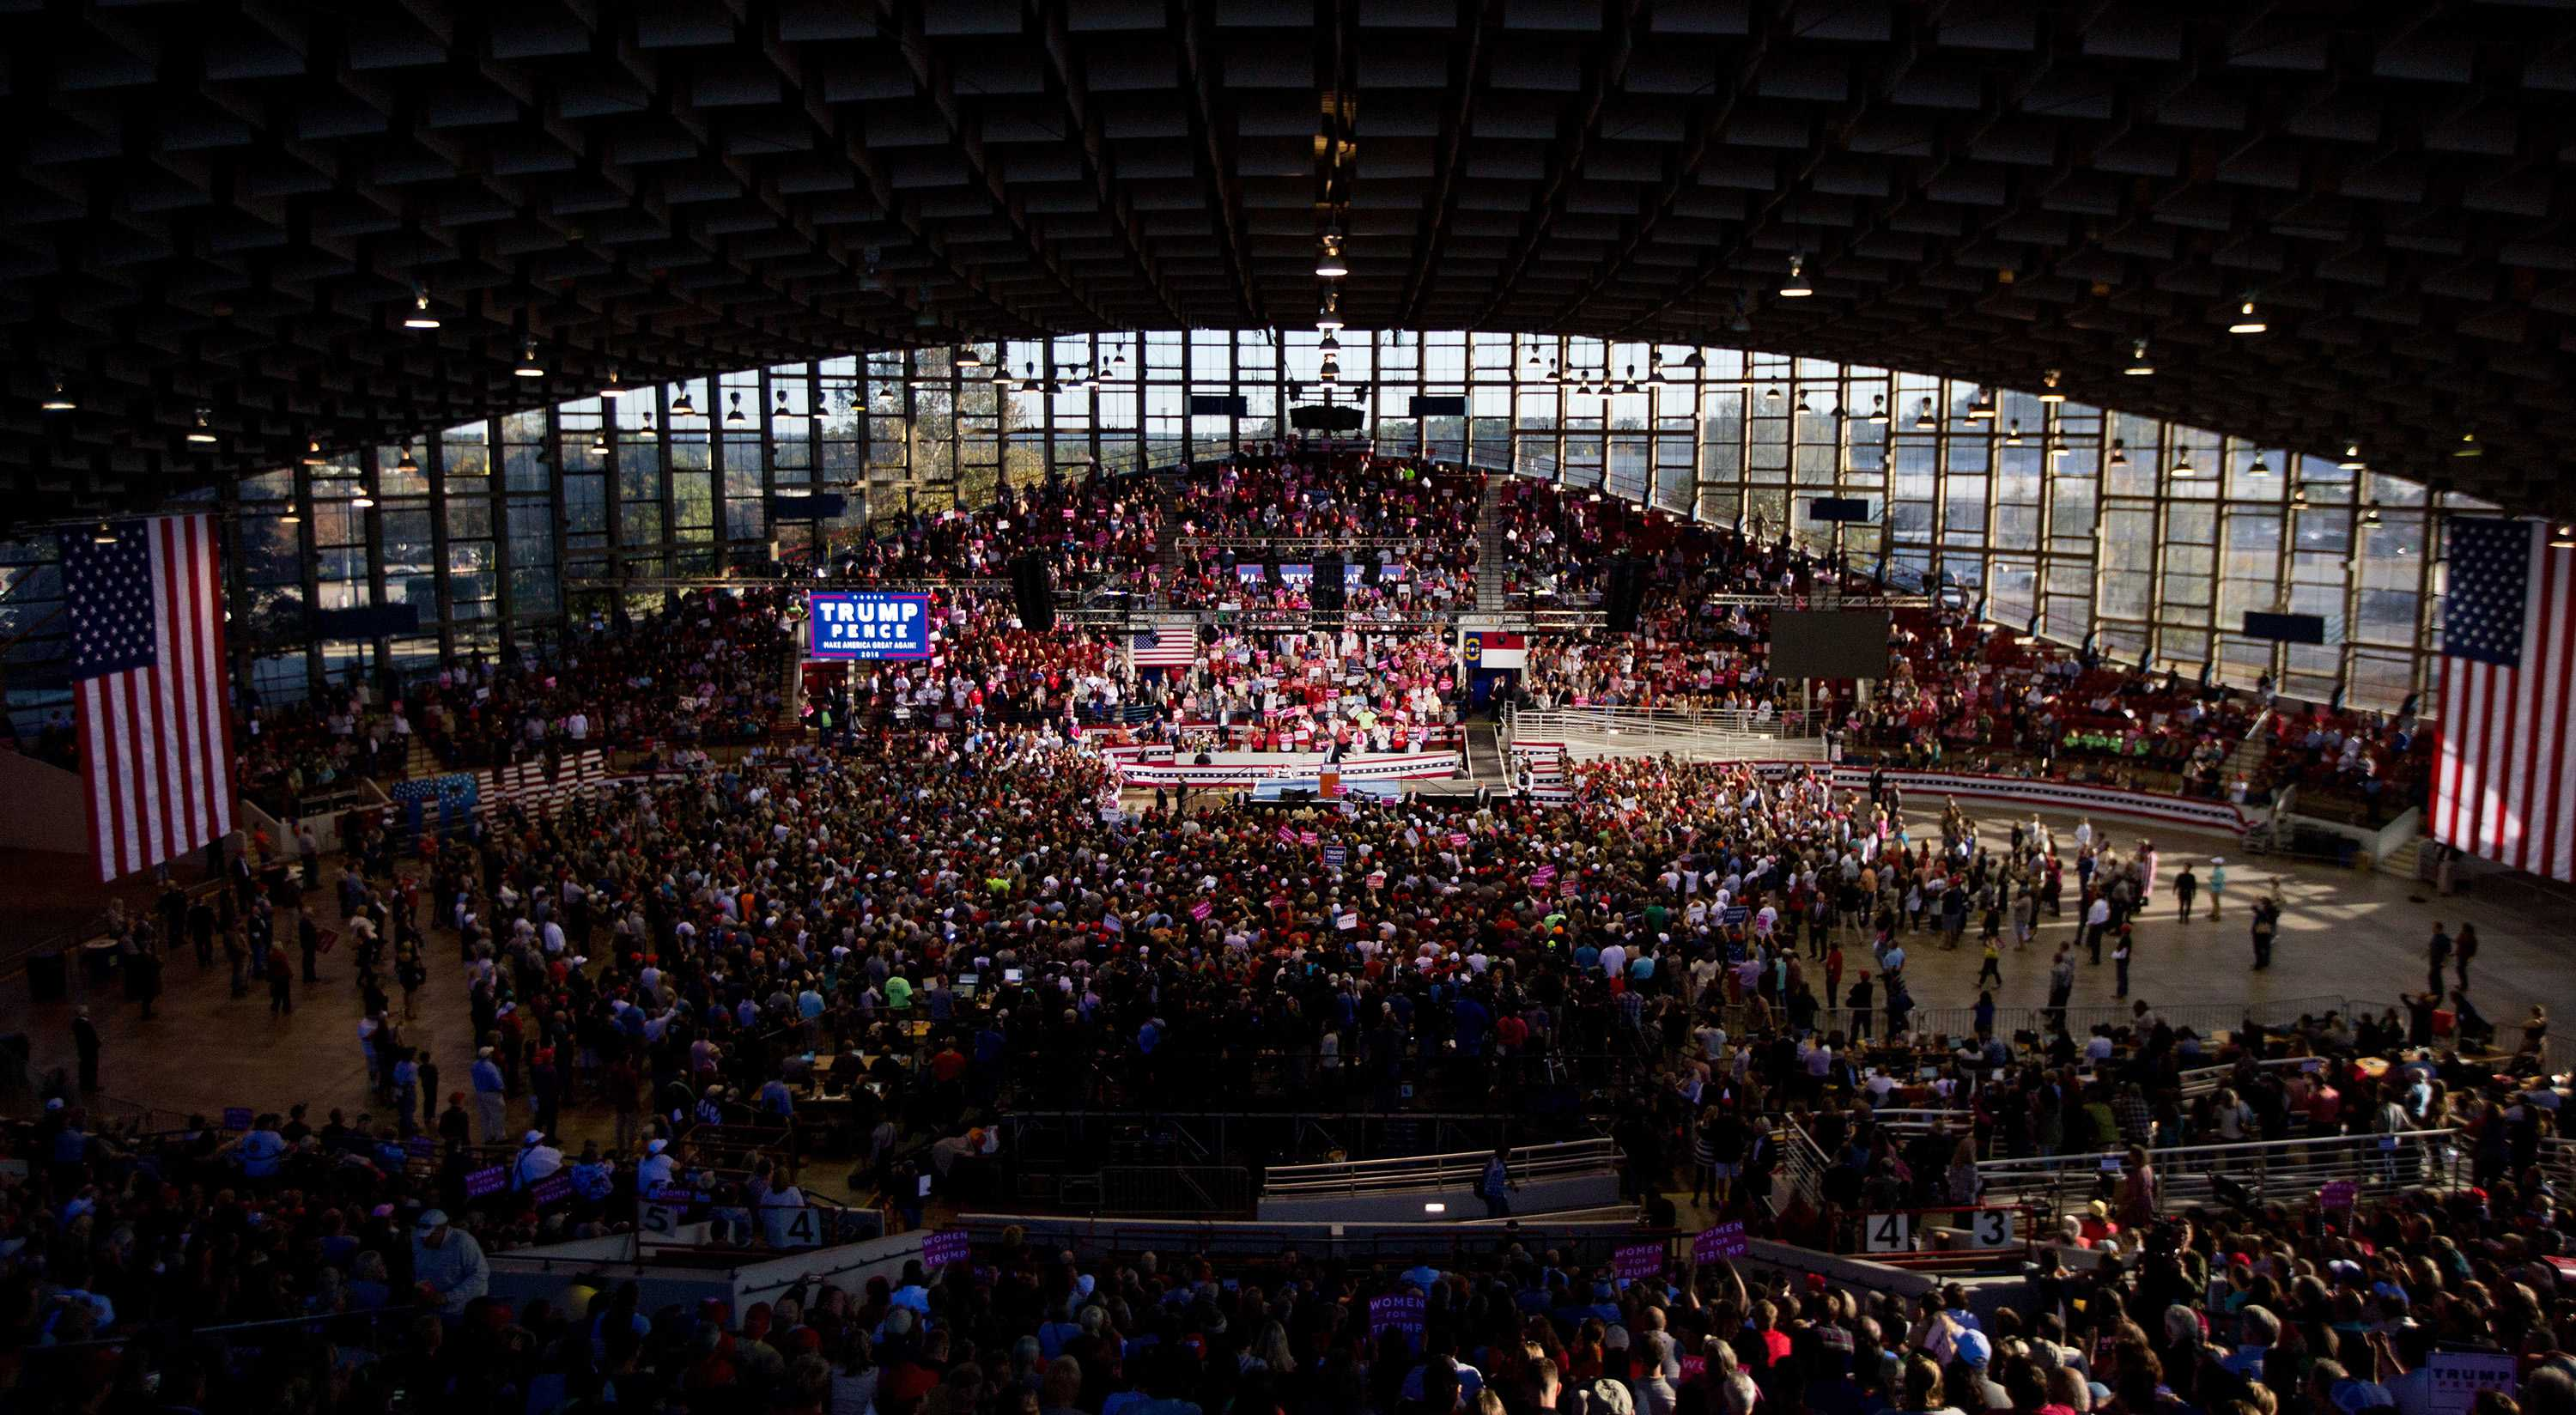 Then-Republican nominee for President Donald Trump campaigns at Dorton Arena Monday, Nov. 7, 2016 in Raleigh N.C. It's the final day before Election Day. (Jill Knight/Raleigh News & Observer/TNS)